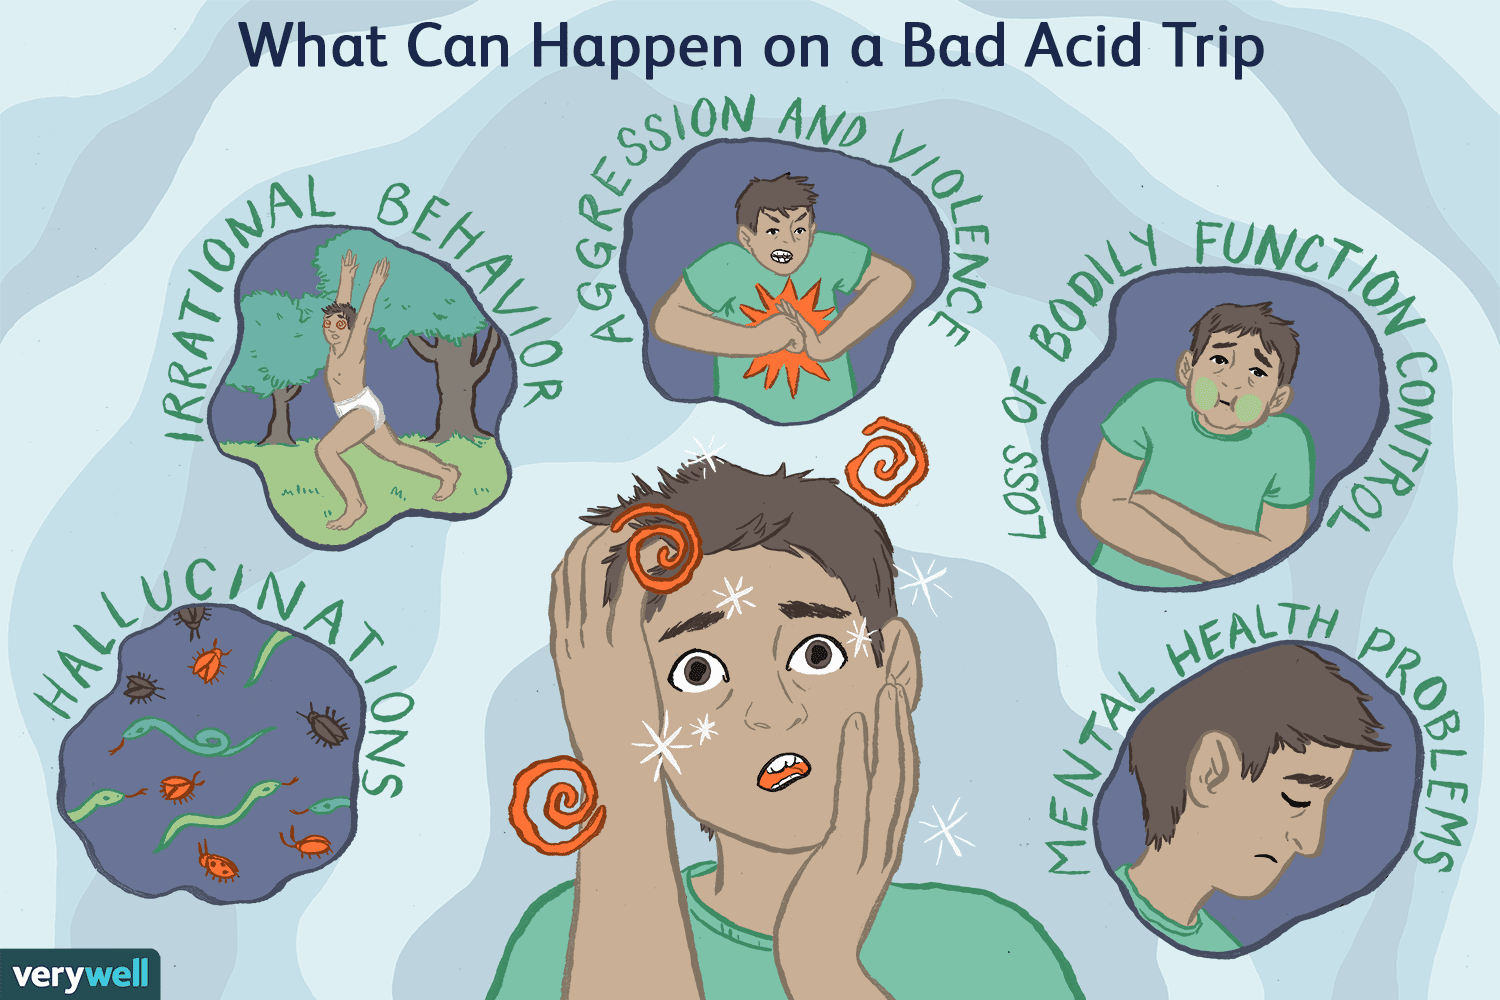 5 True Bad Acid Trips Stories